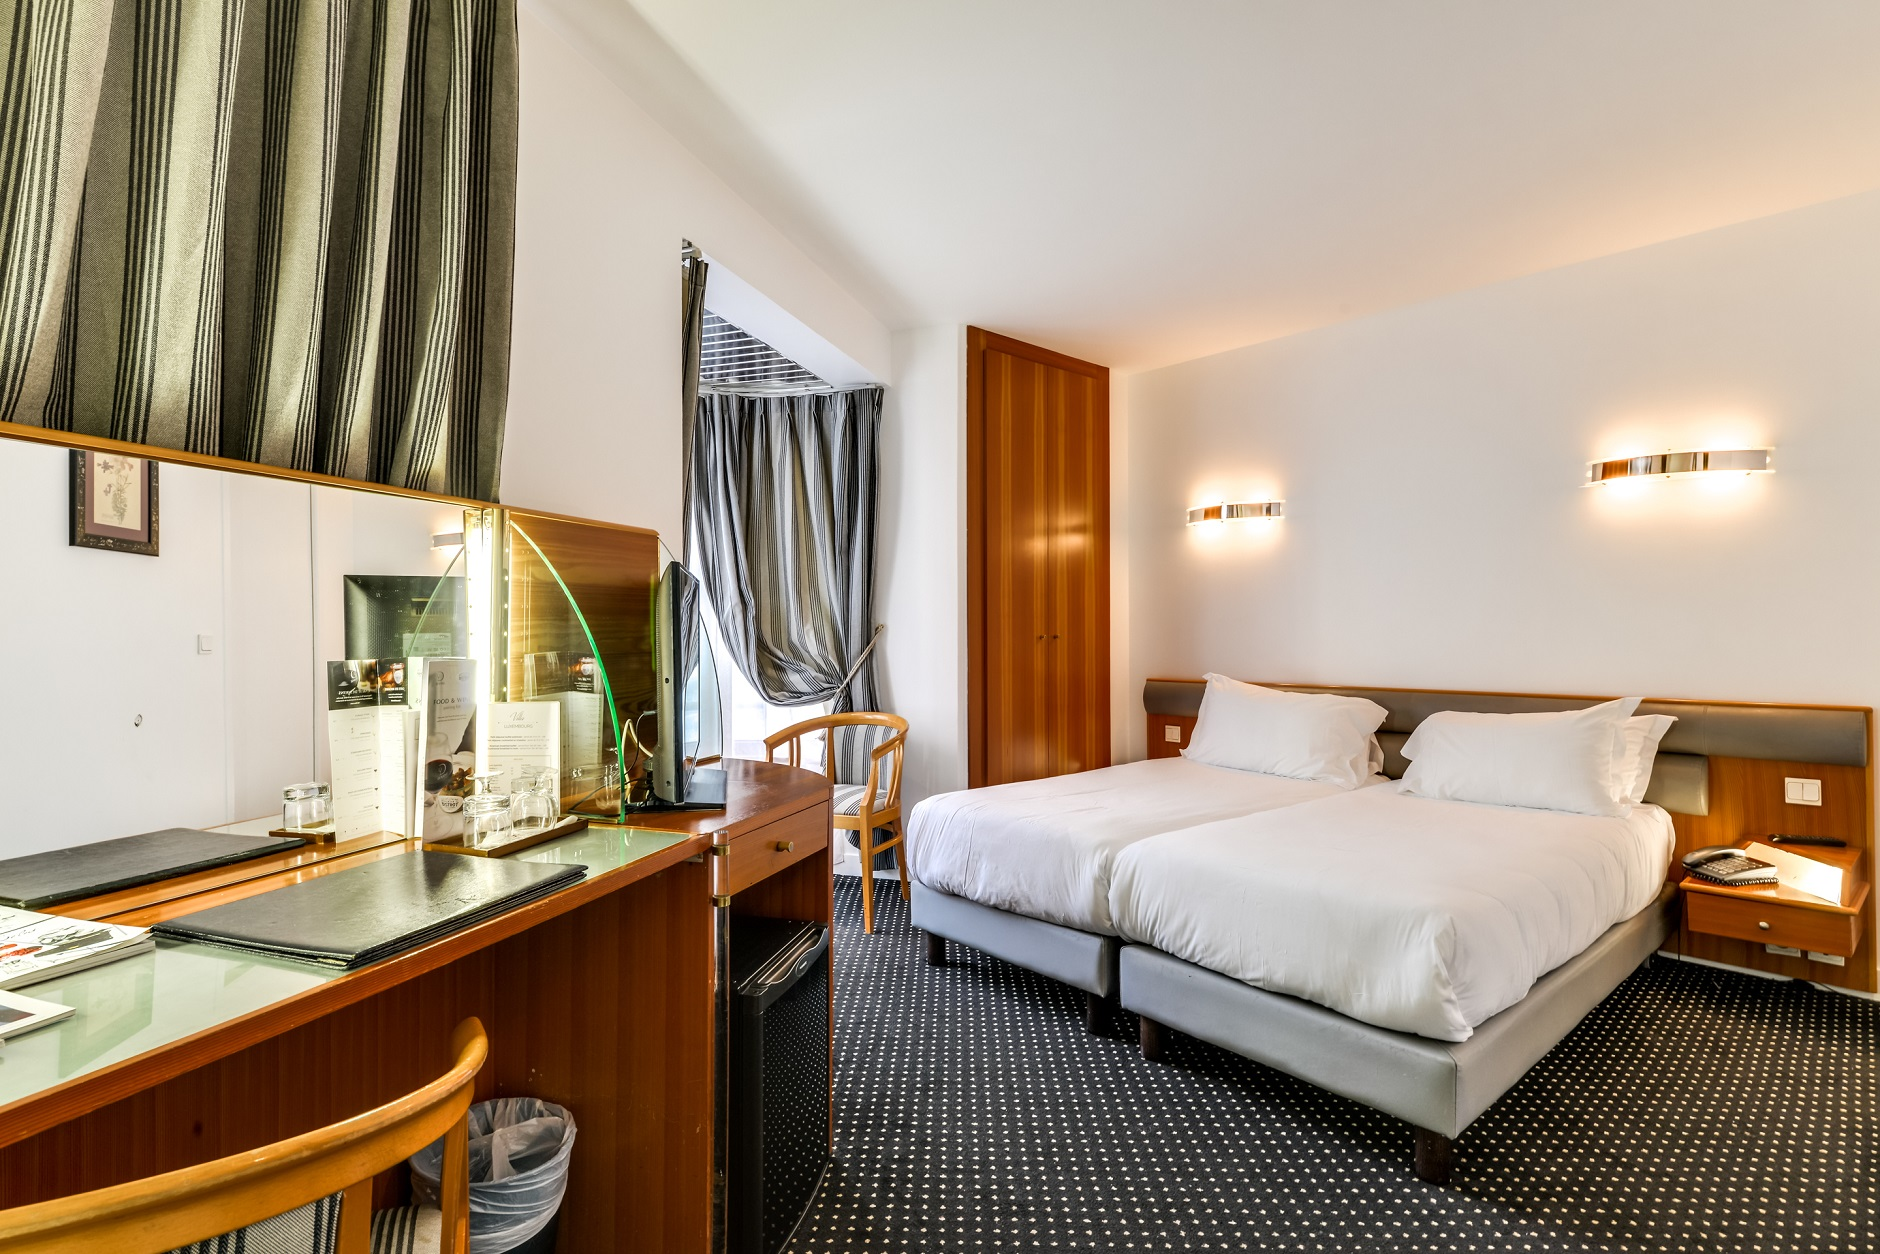 Villa Luxembourg A Modern Hotel In The Heart Of The Montparnasse